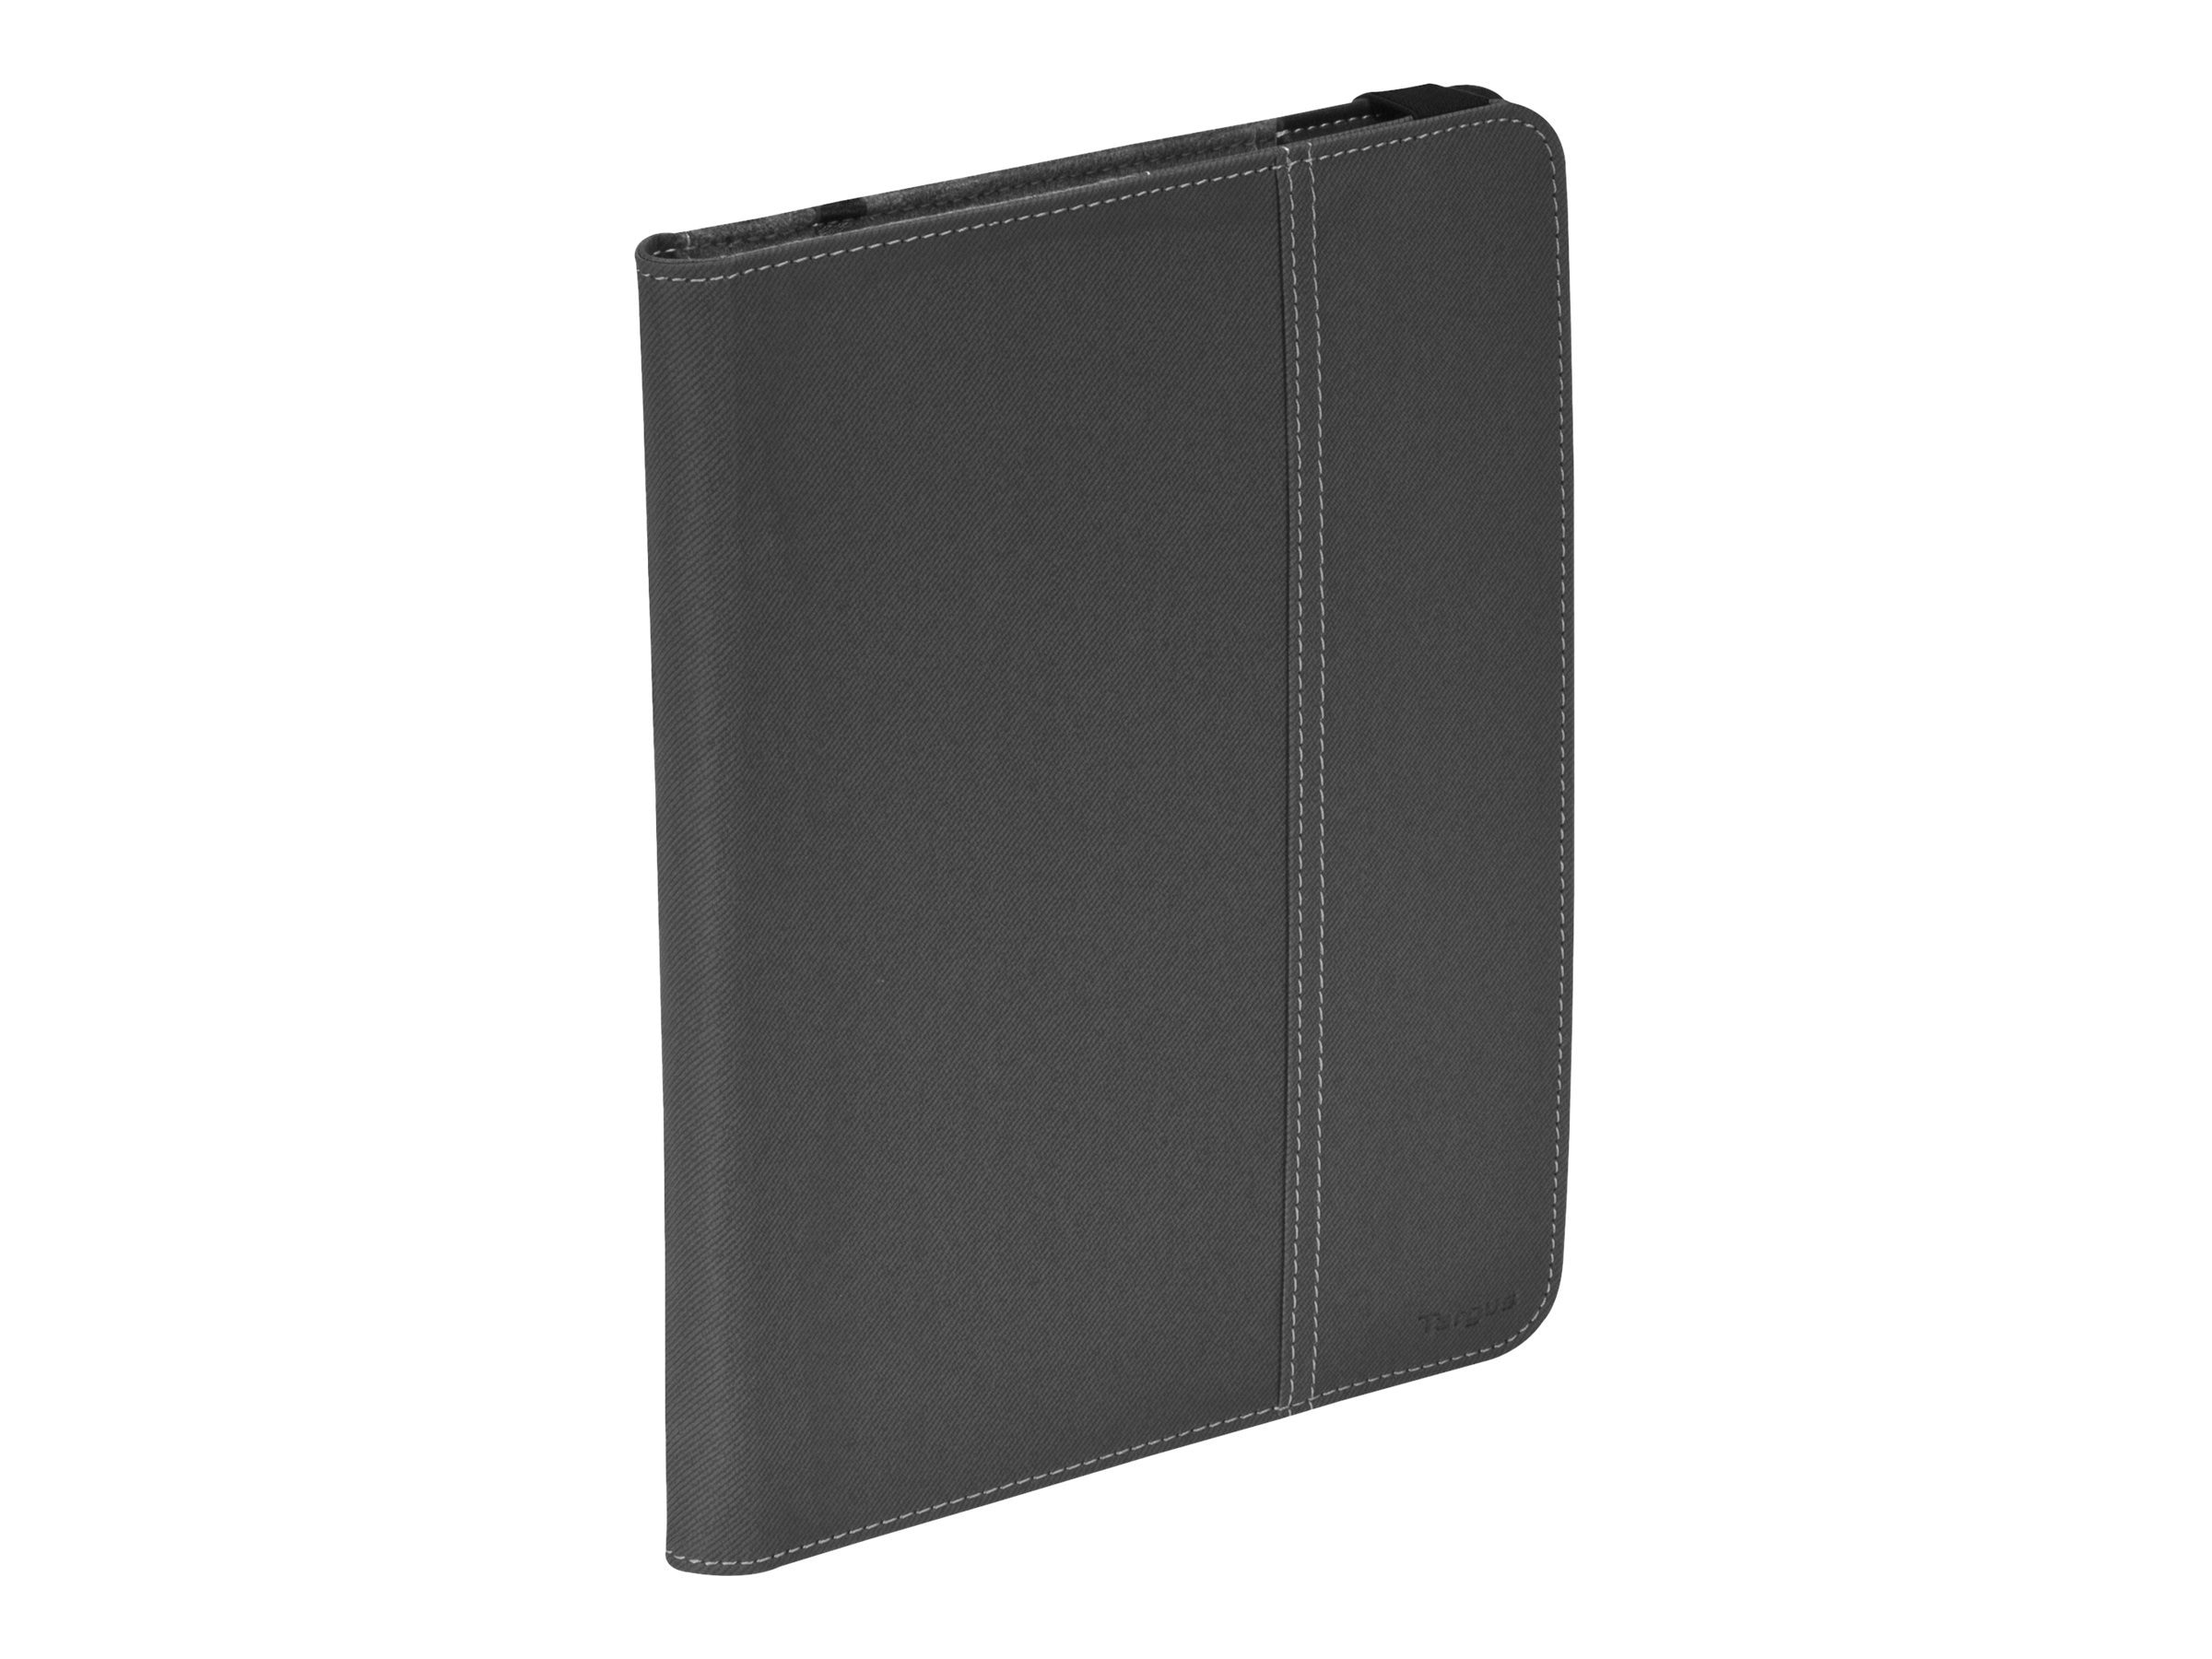 Targus Business Folio with Stand for iPad 3, Gray, THZ15502US